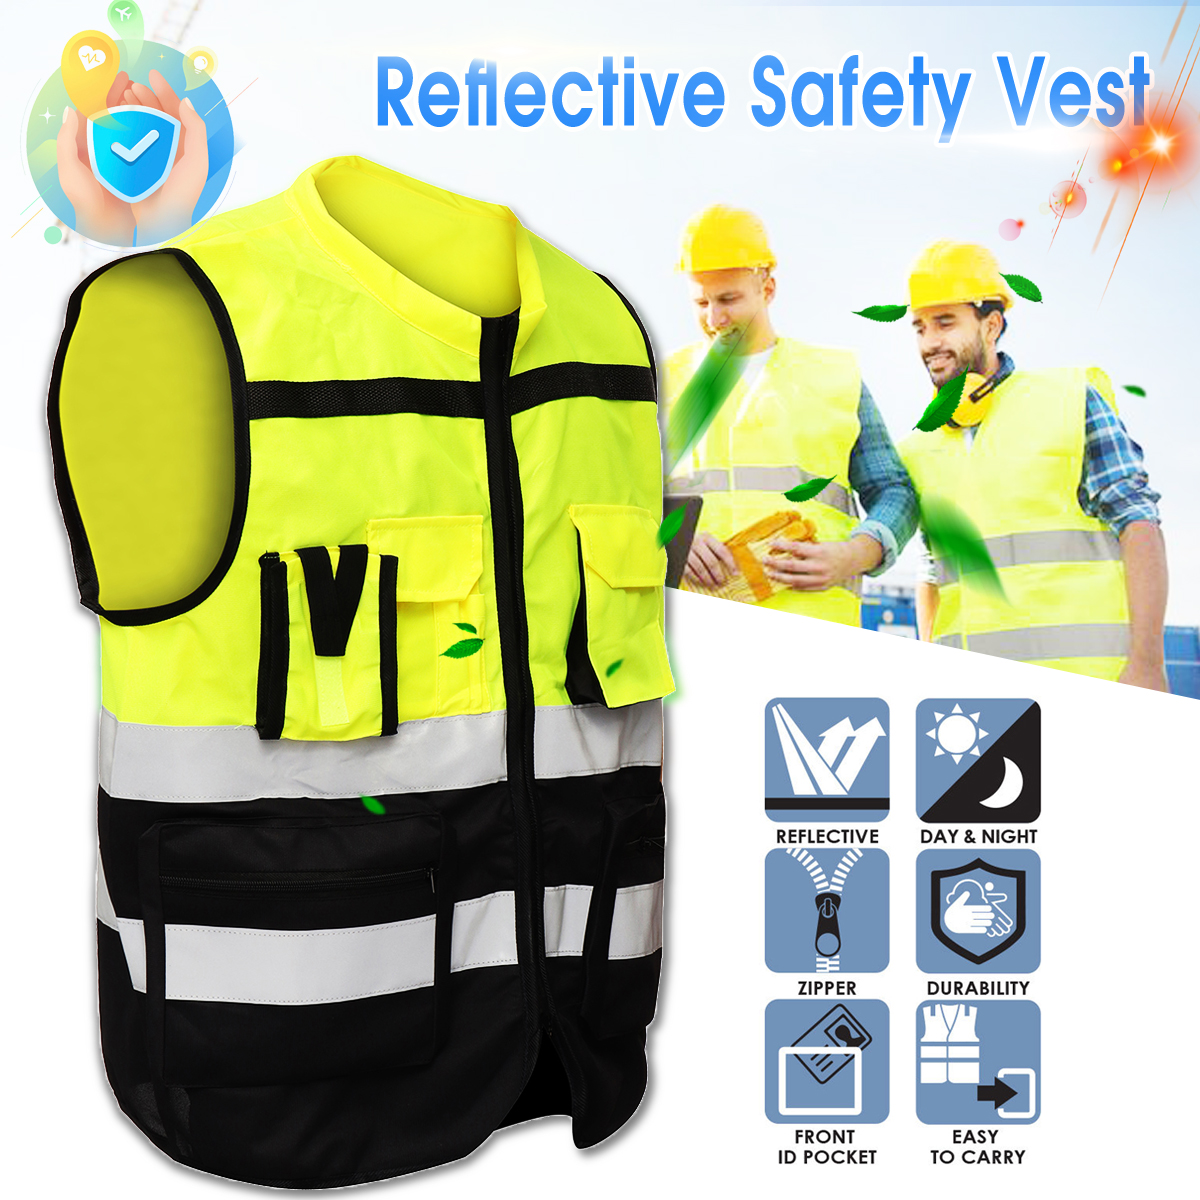 Dynamic Spardwear High Visibility Security Vest Safety Vest Mesh Fabric Reflective Safety Mesh Vest Road Safety Free Shipping Safety Clothing Workplace Safety Supplies